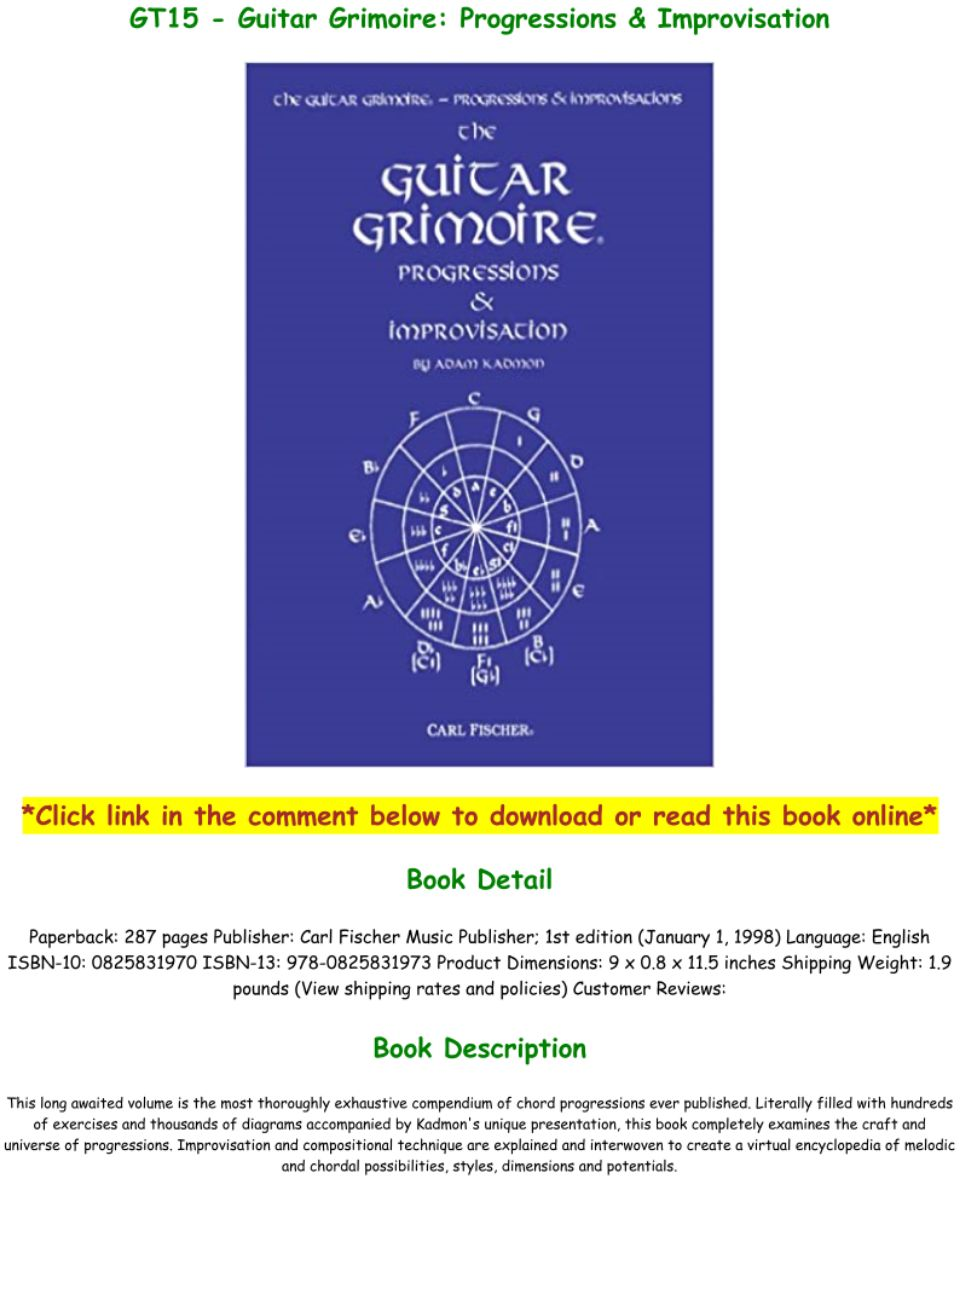 Guitar Grimoire Progressions & Improvisation Pdf